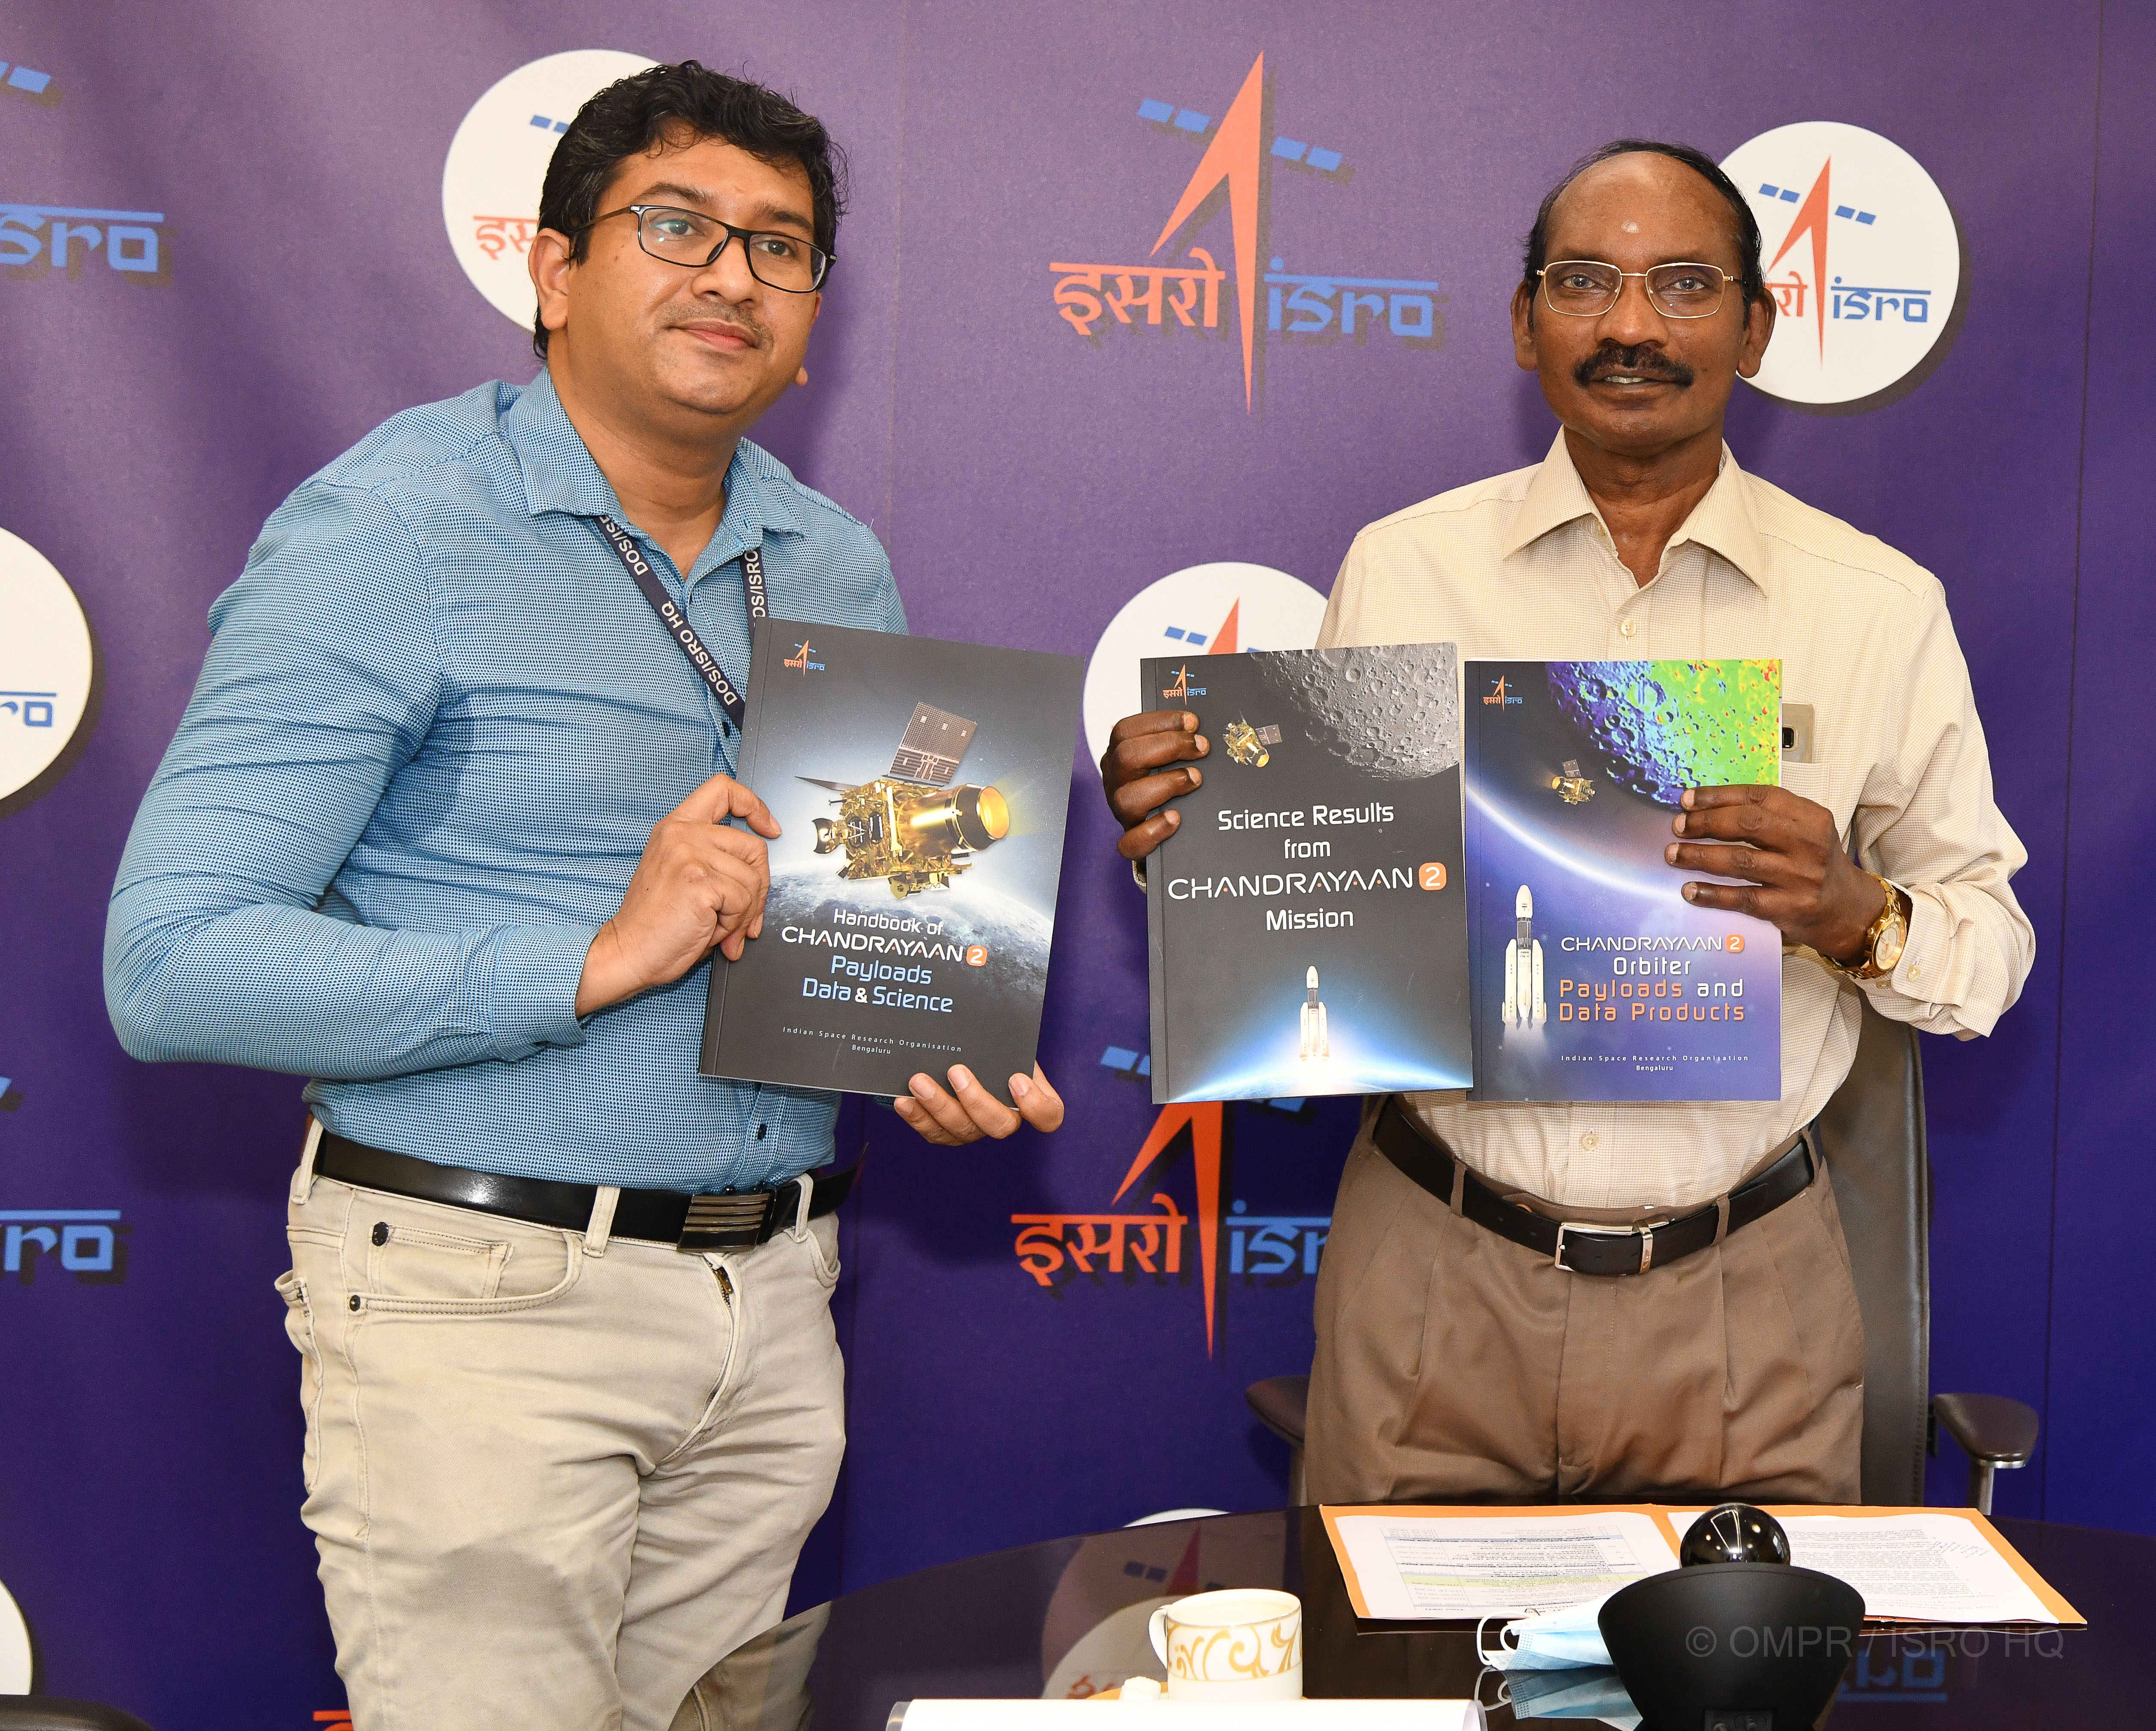 Lunar Science Workshop and Release of Chandrayaan-2 Data